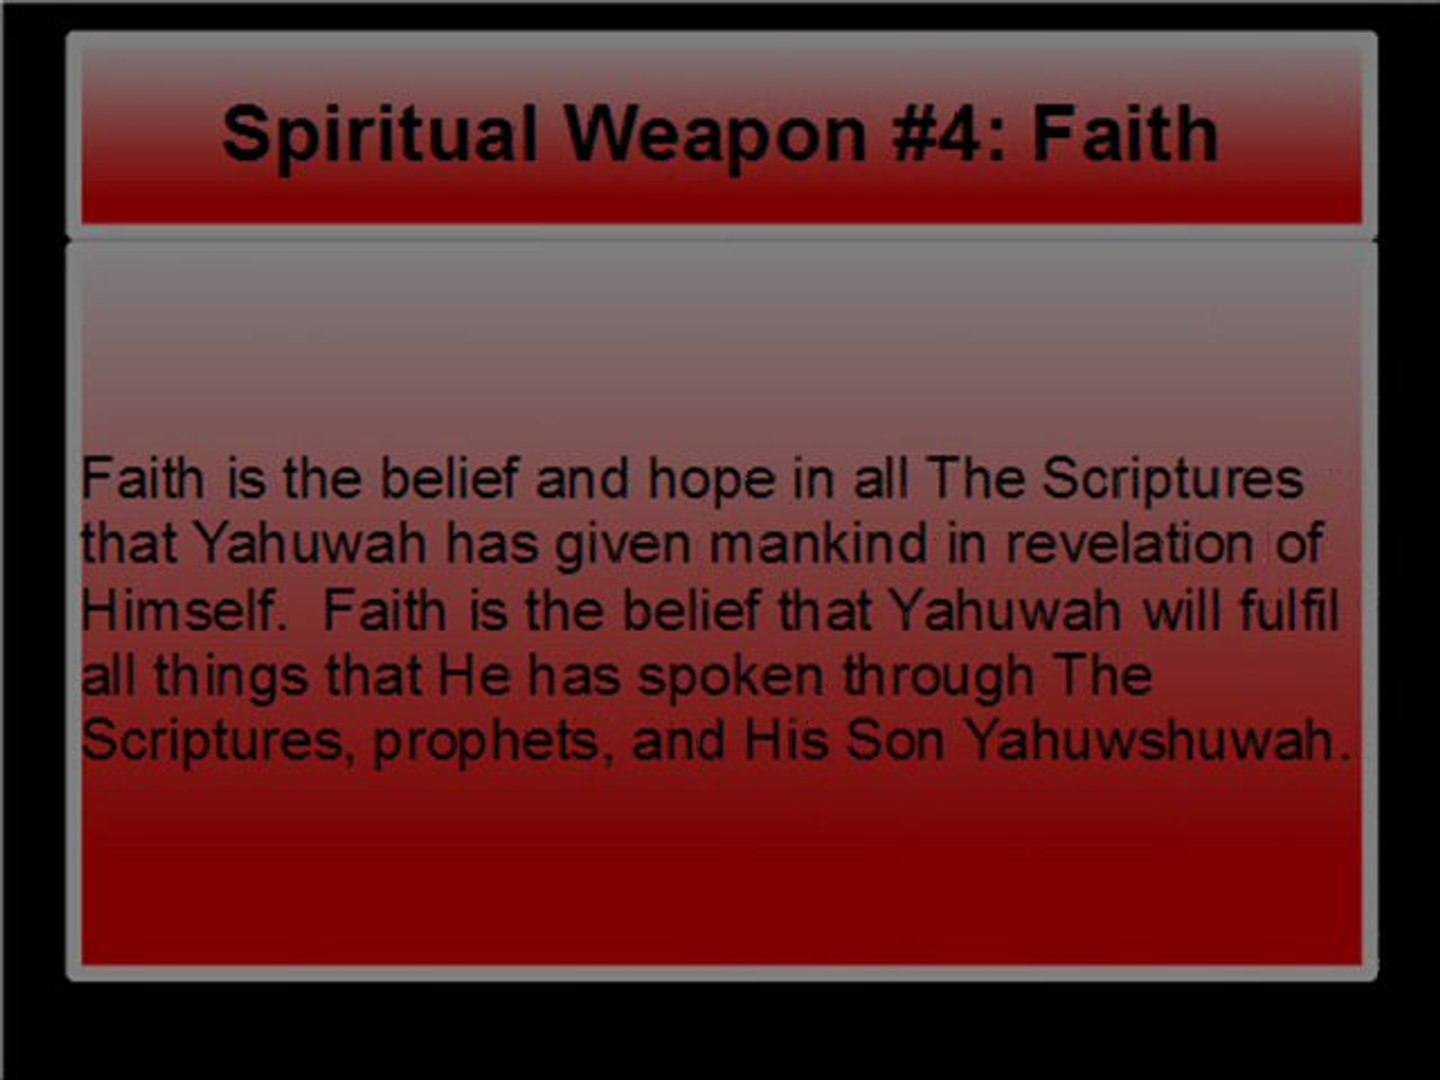 WEAPONS AND THE PEOPLE OF YAHUWAH